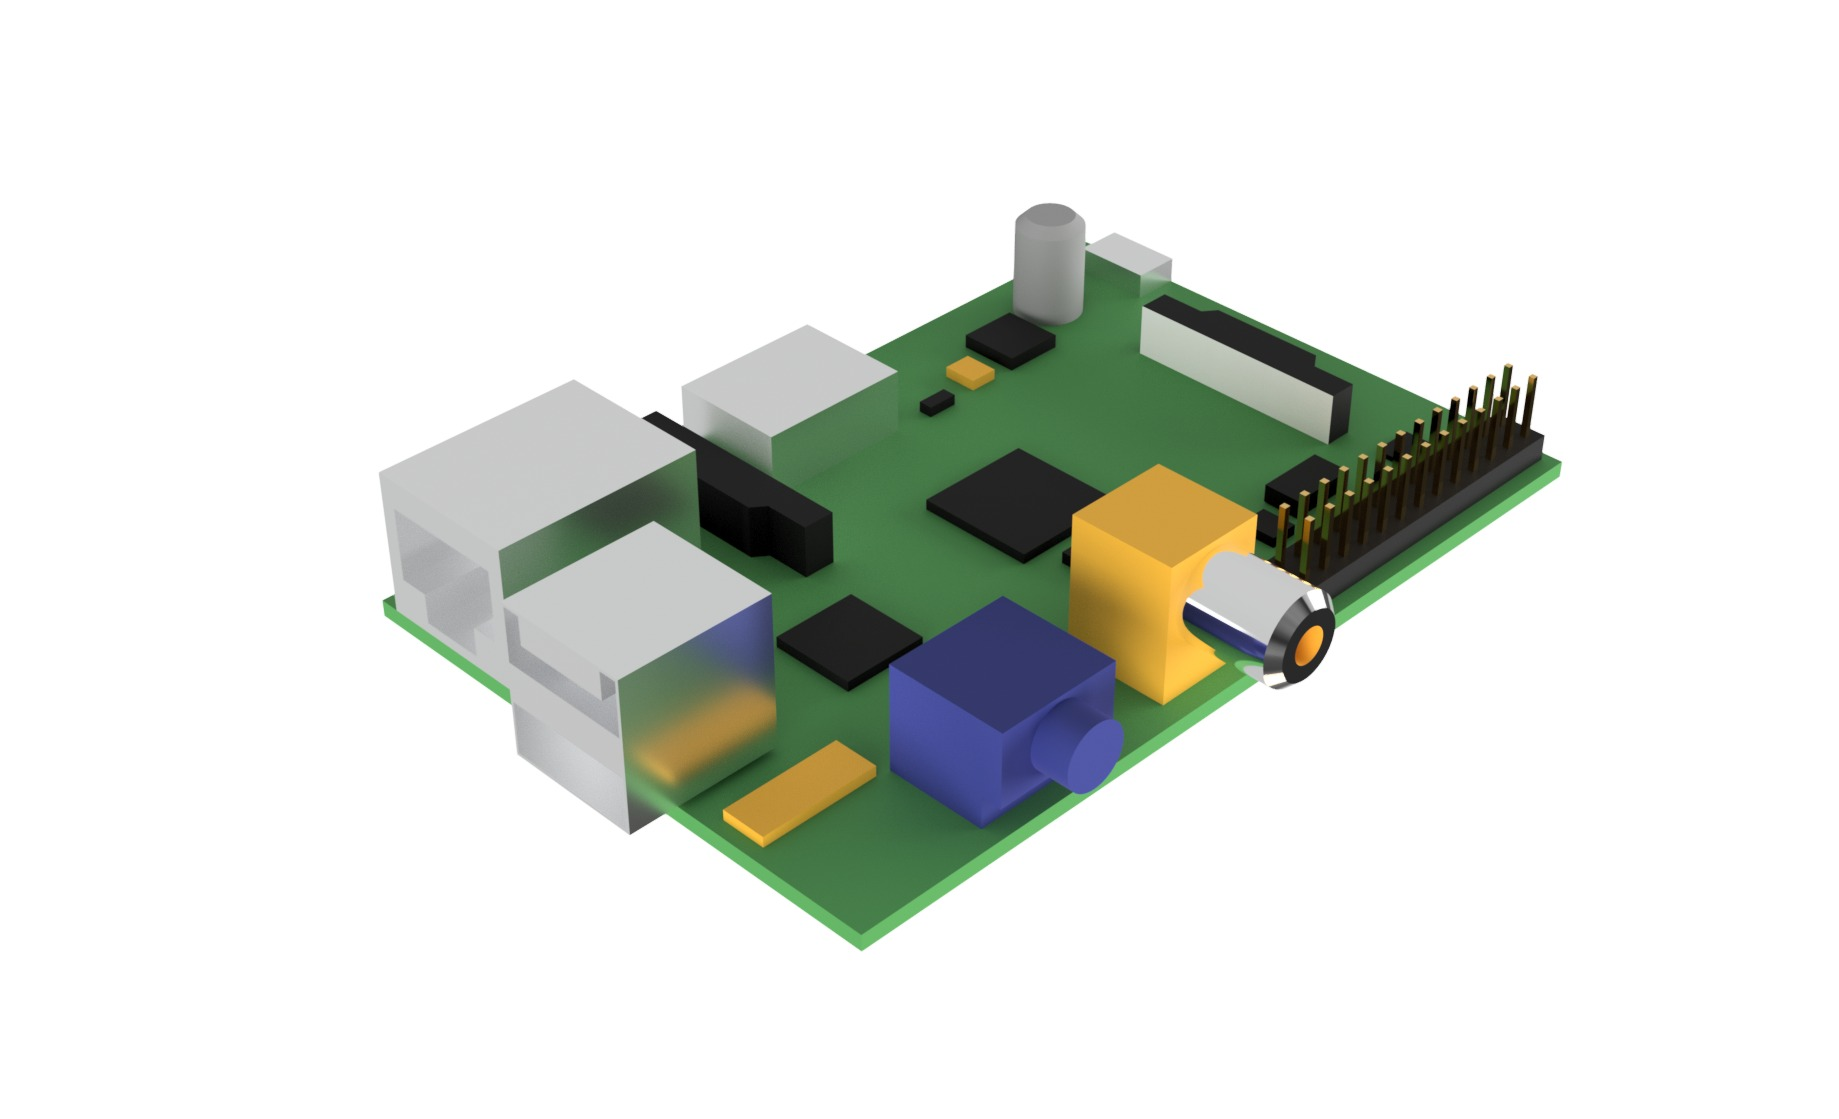 Raspberry Pi Simulation Model|Autodesk Online Gallery